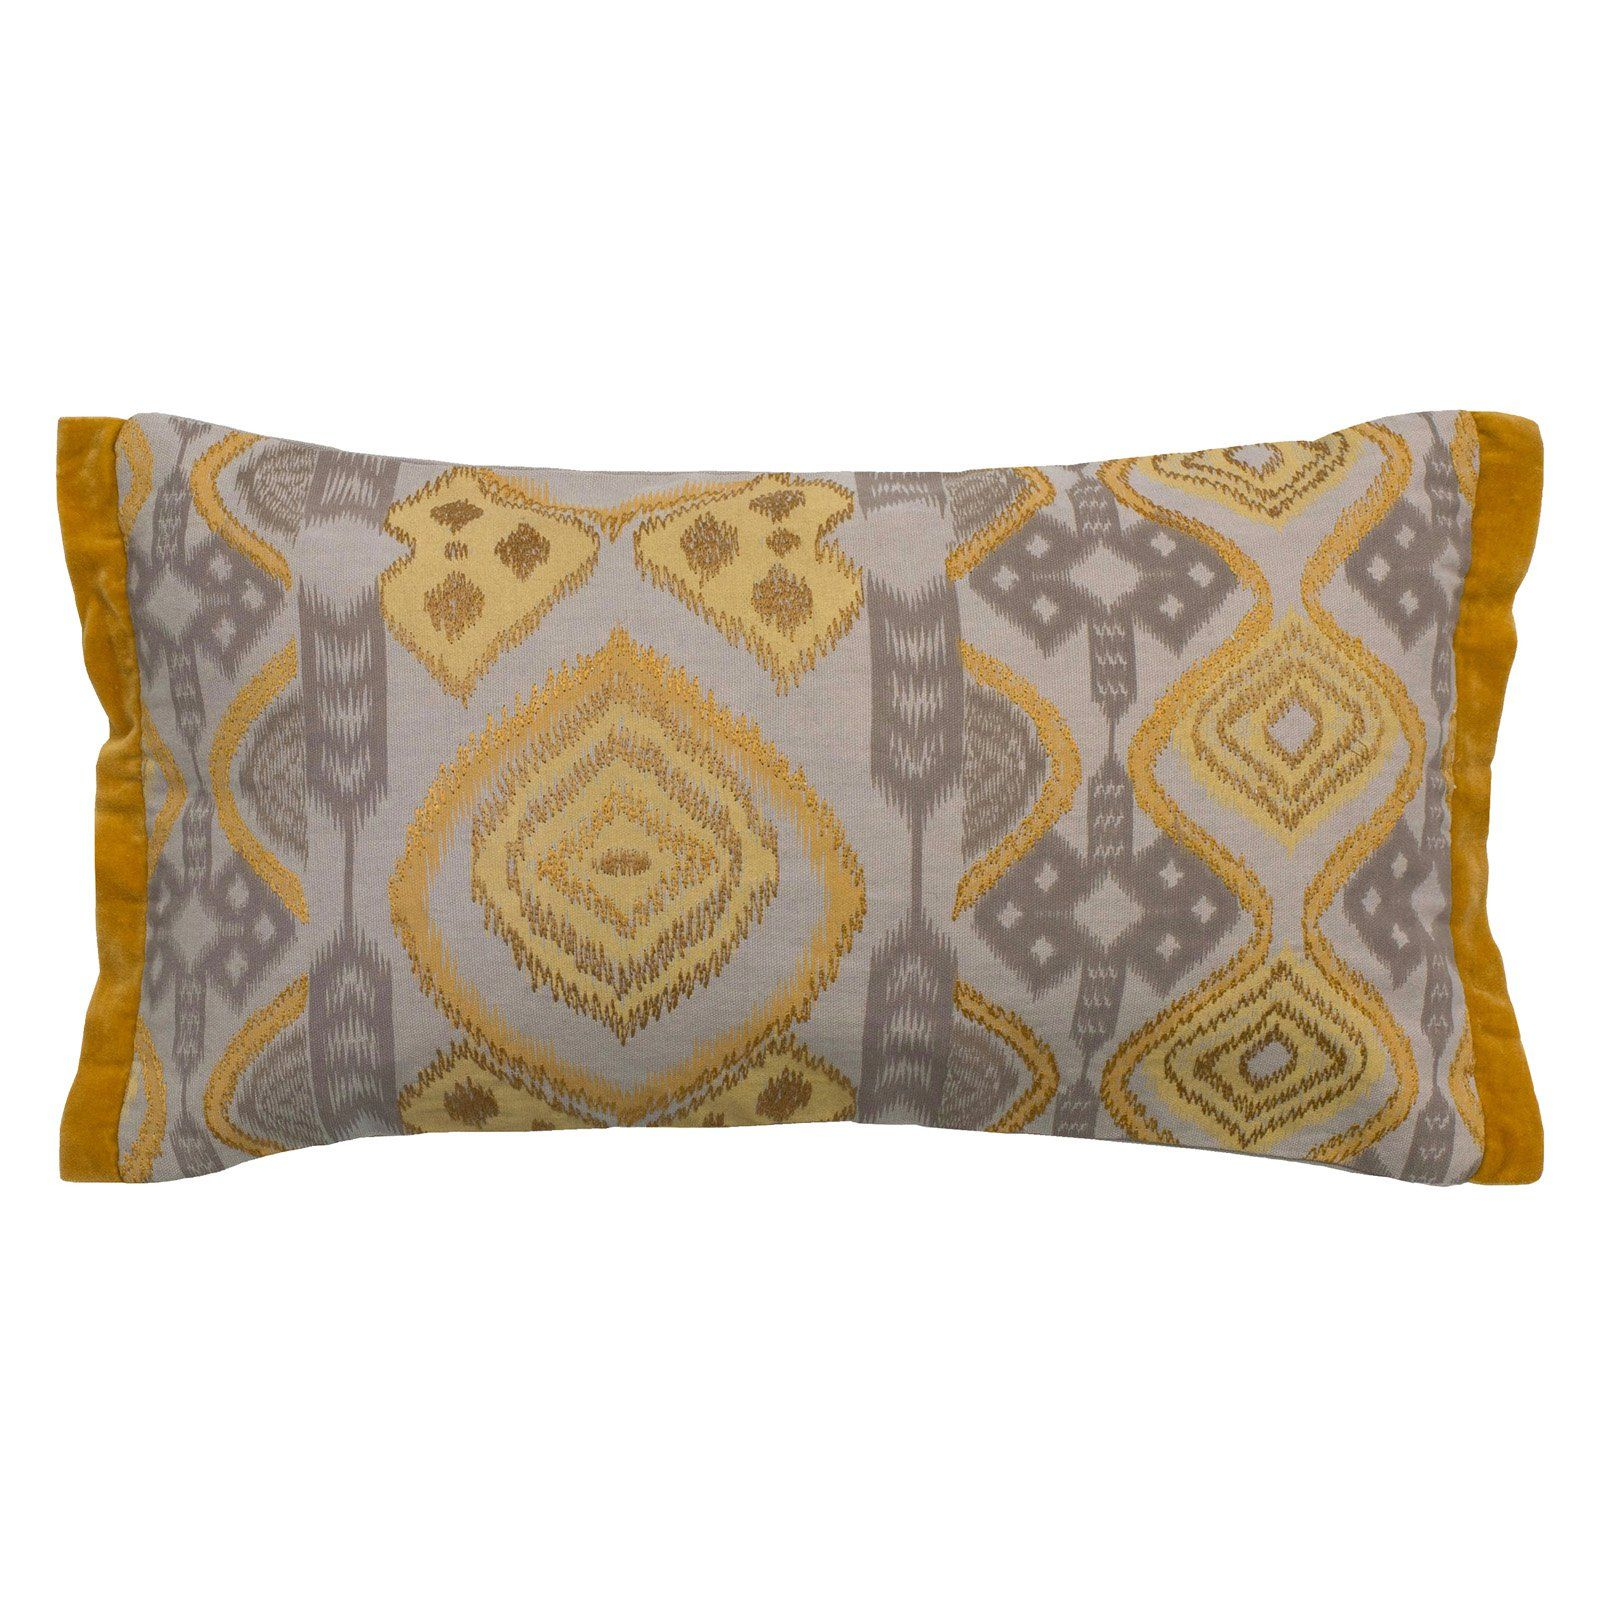 Rizzy Home Ikat Medallions Decorative Pillow ...